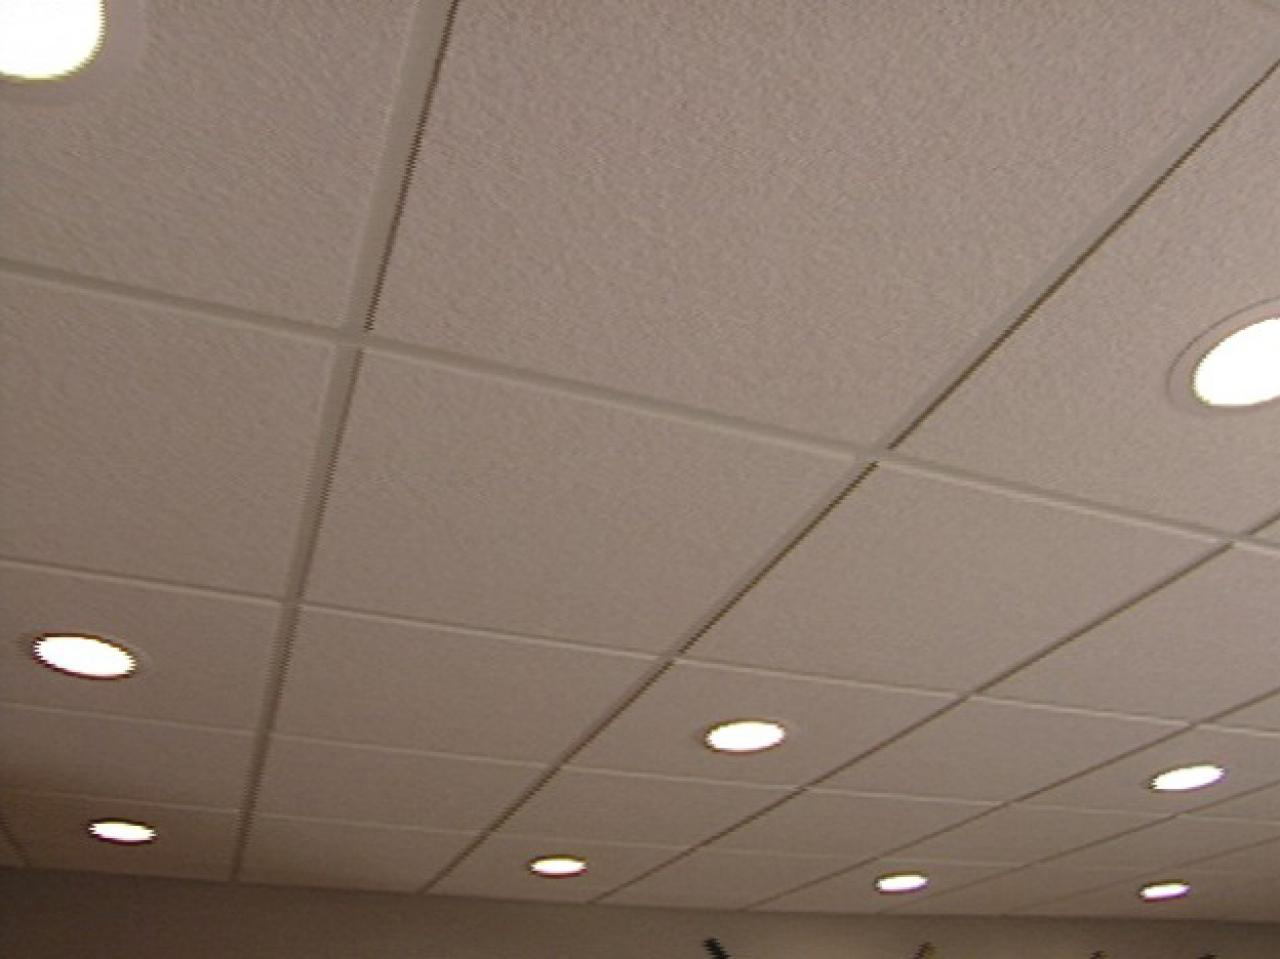 How to install an acoustic drop ceiling how tos diy how to install an acoustic drop ceiling doublecrazyfo Choice Image